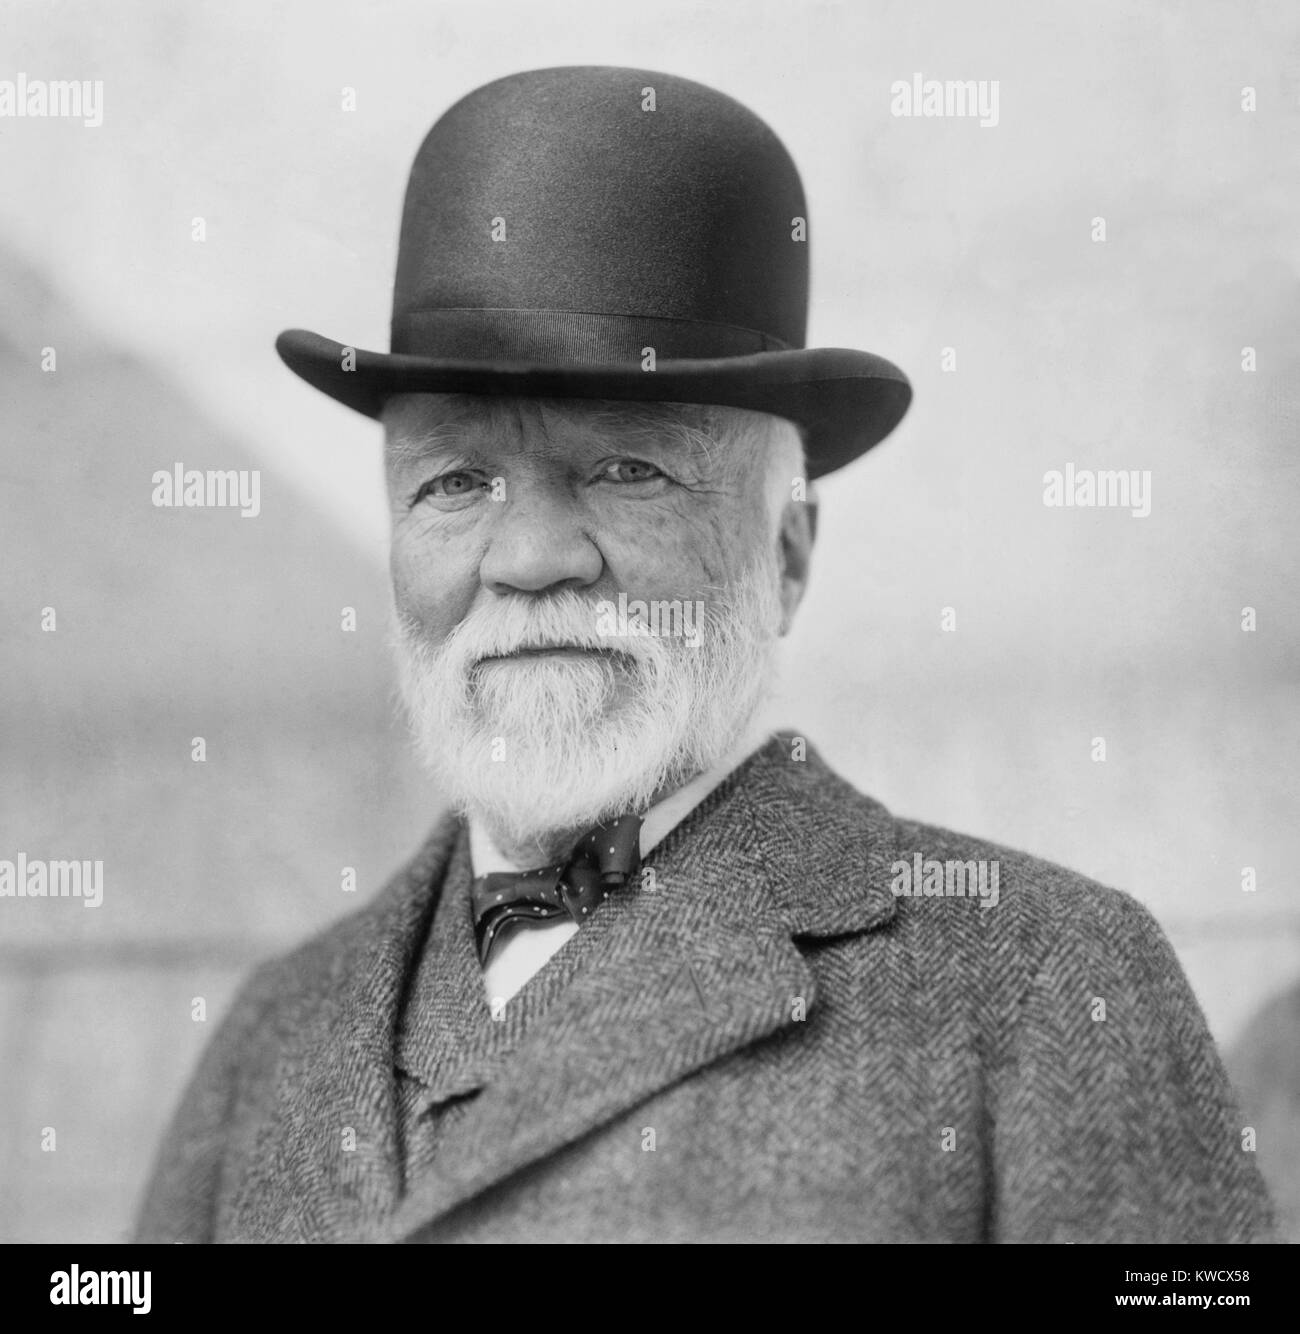 Andrew Carnegie on return from his annual visit to Europe, NYC, Oct. 17, 1913. (BSLOC 2017 2 179) Stock Photo